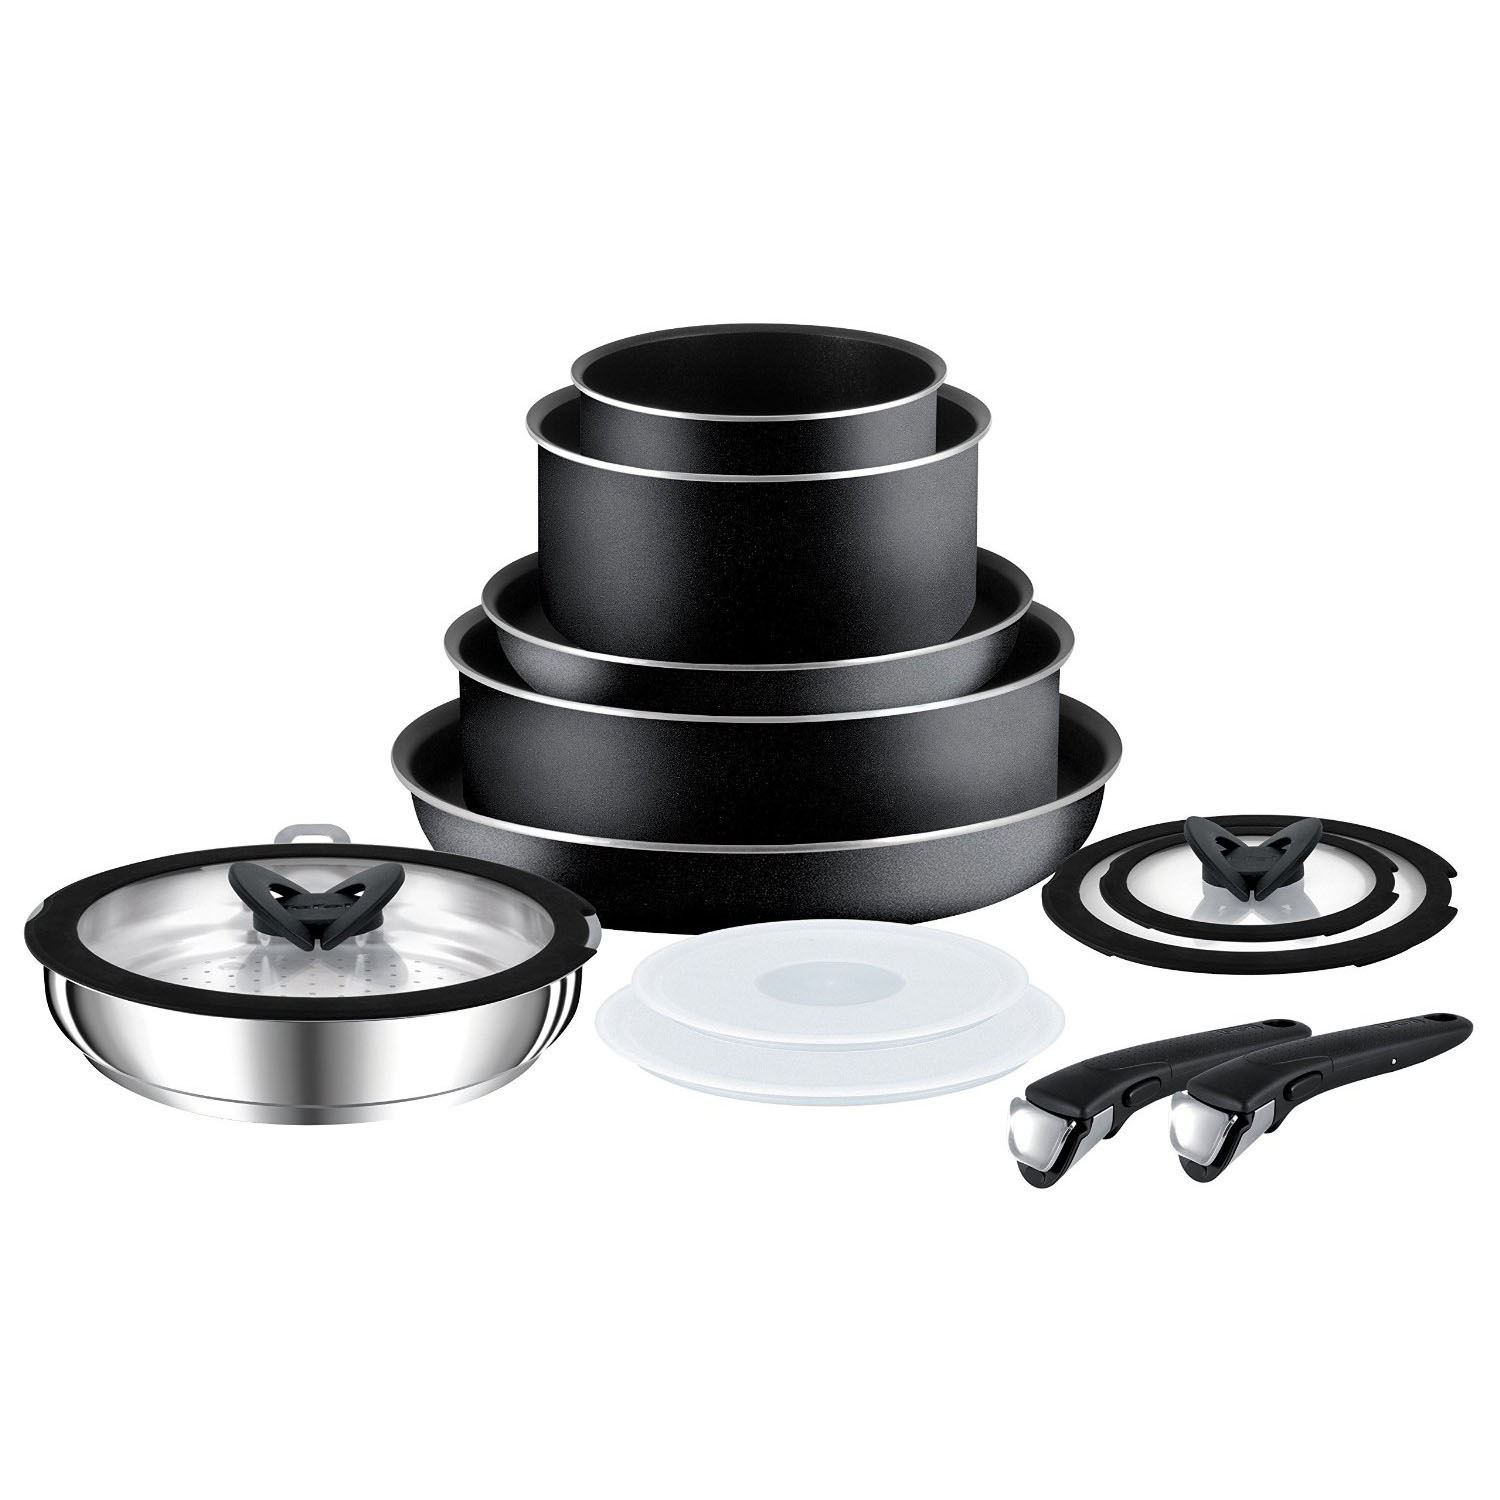 tefal l0368042 ingenio 13 piece saucepan frying fry pan cookset cookware set new ebay. Black Bedroom Furniture Sets. Home Design Ideas